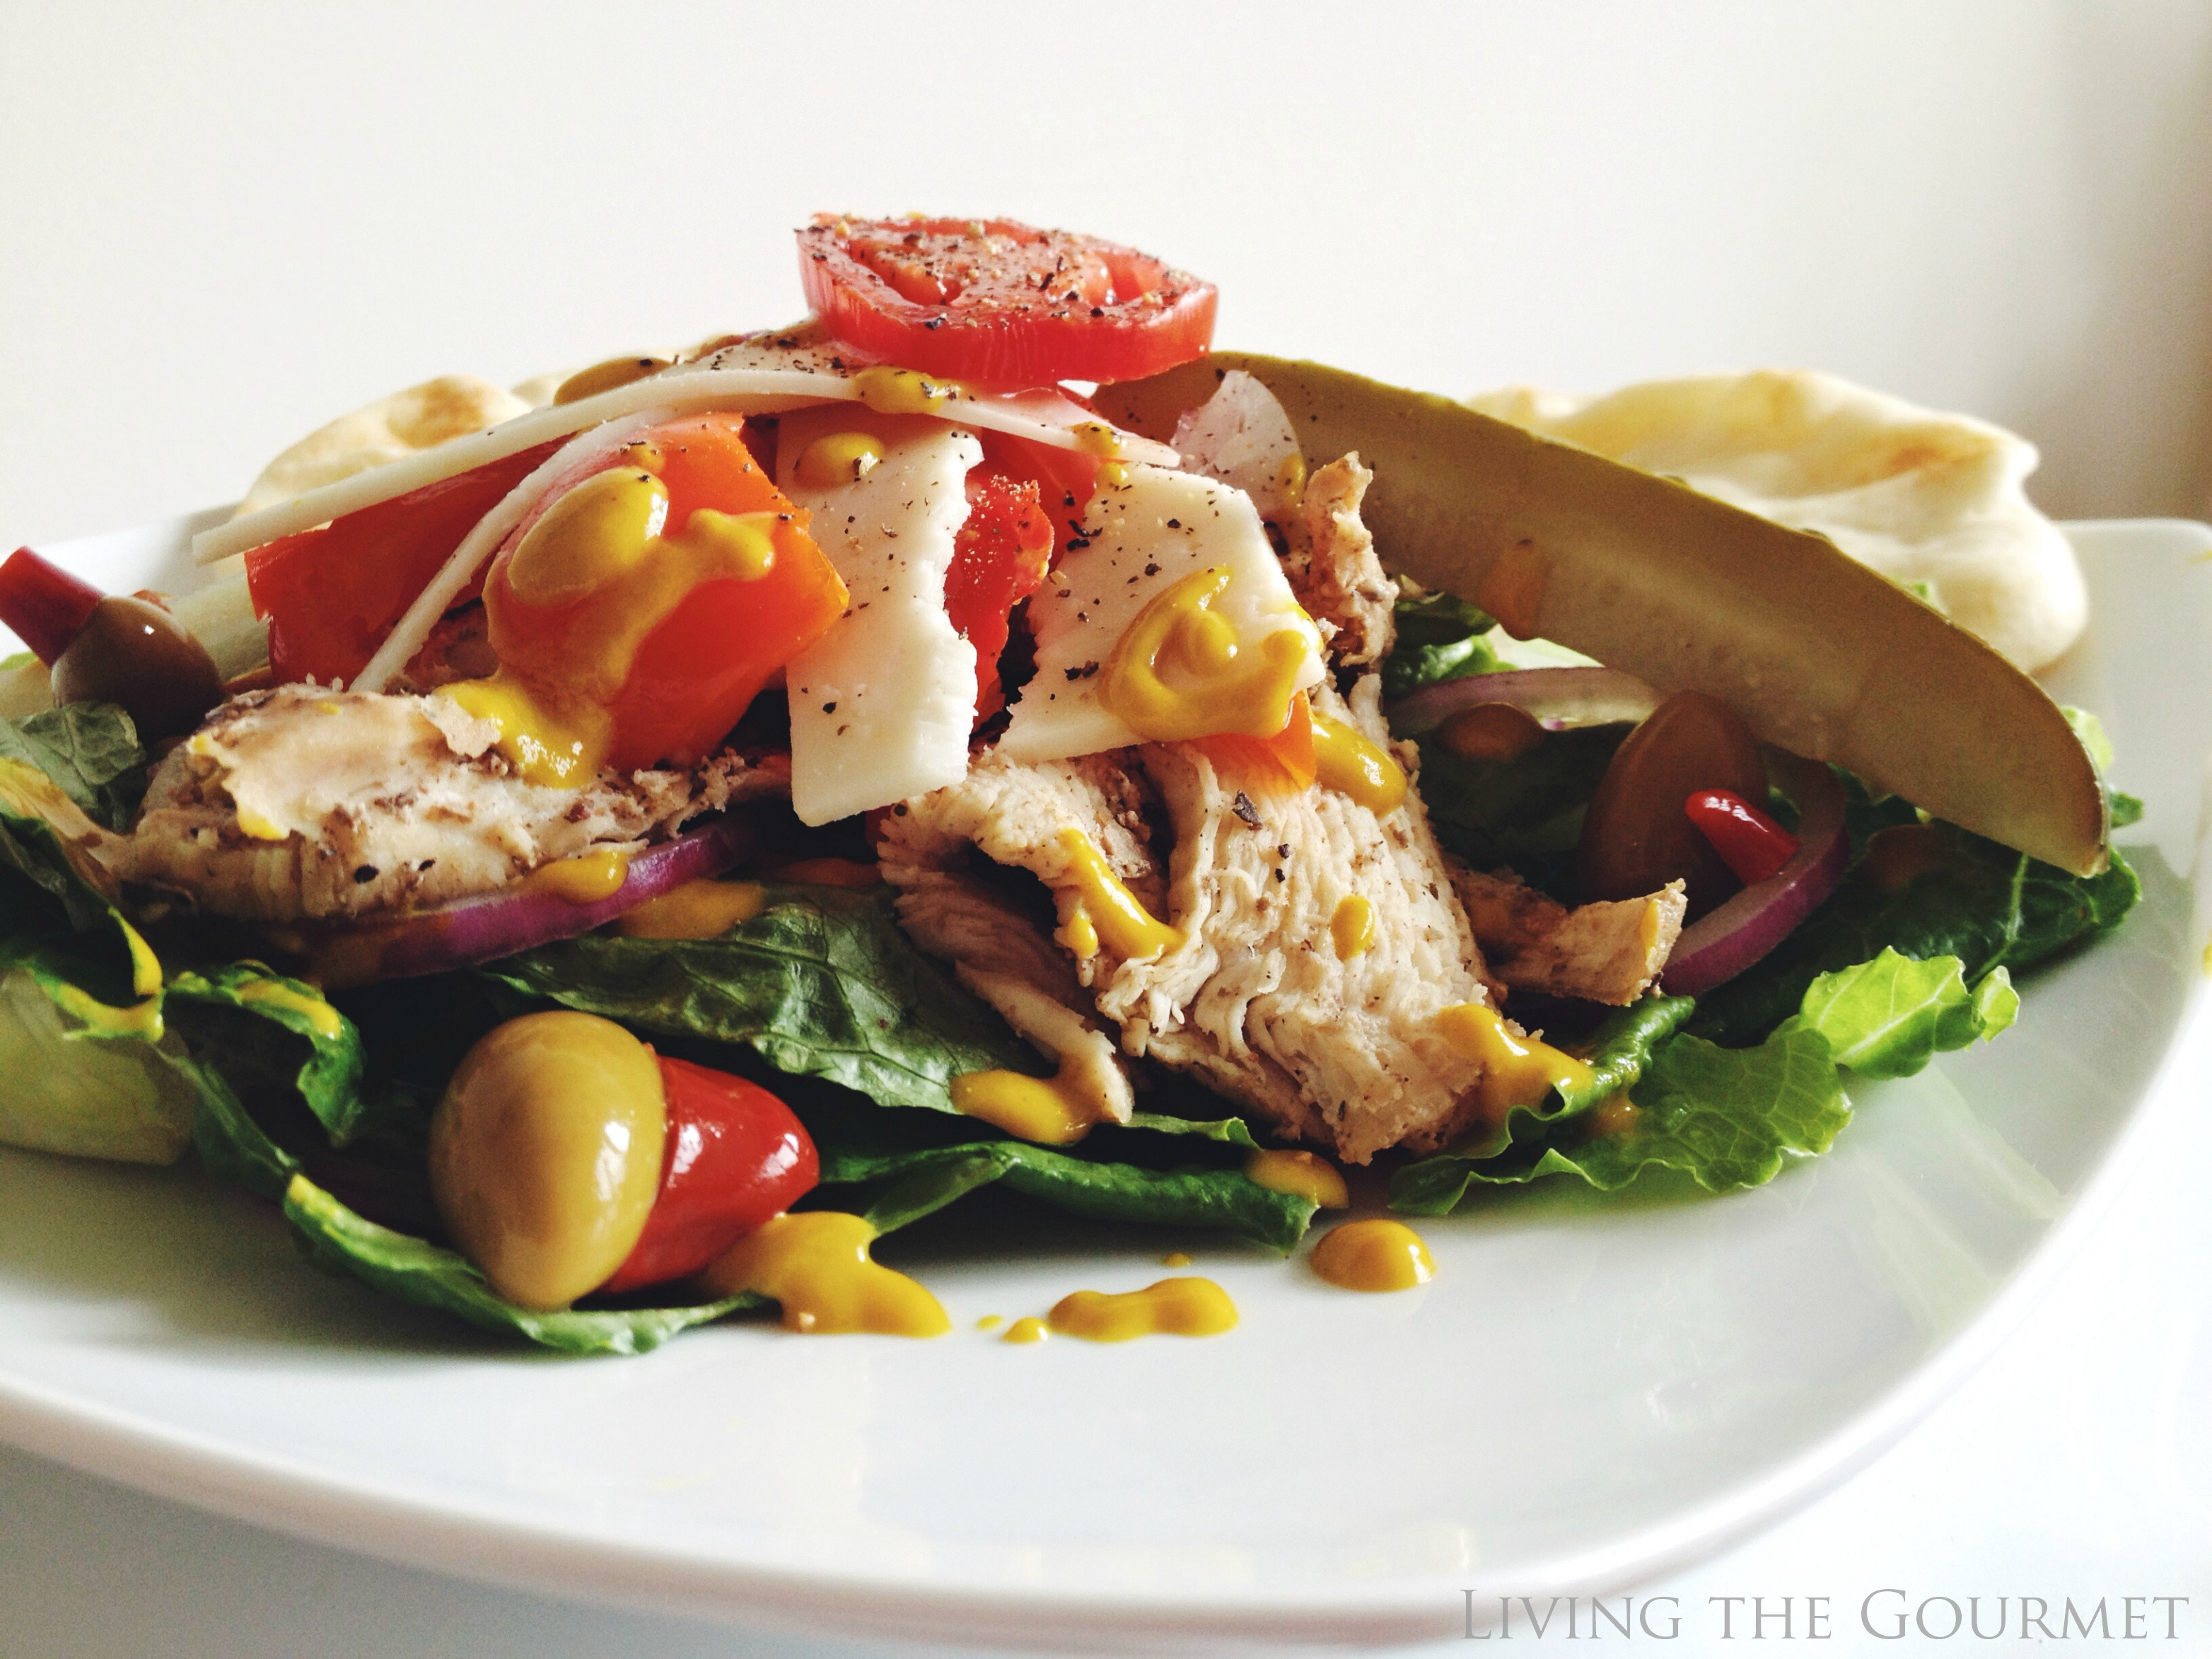 Living the Gourmet: Easy & Light Chicken Salad with Fresh Salad Greens